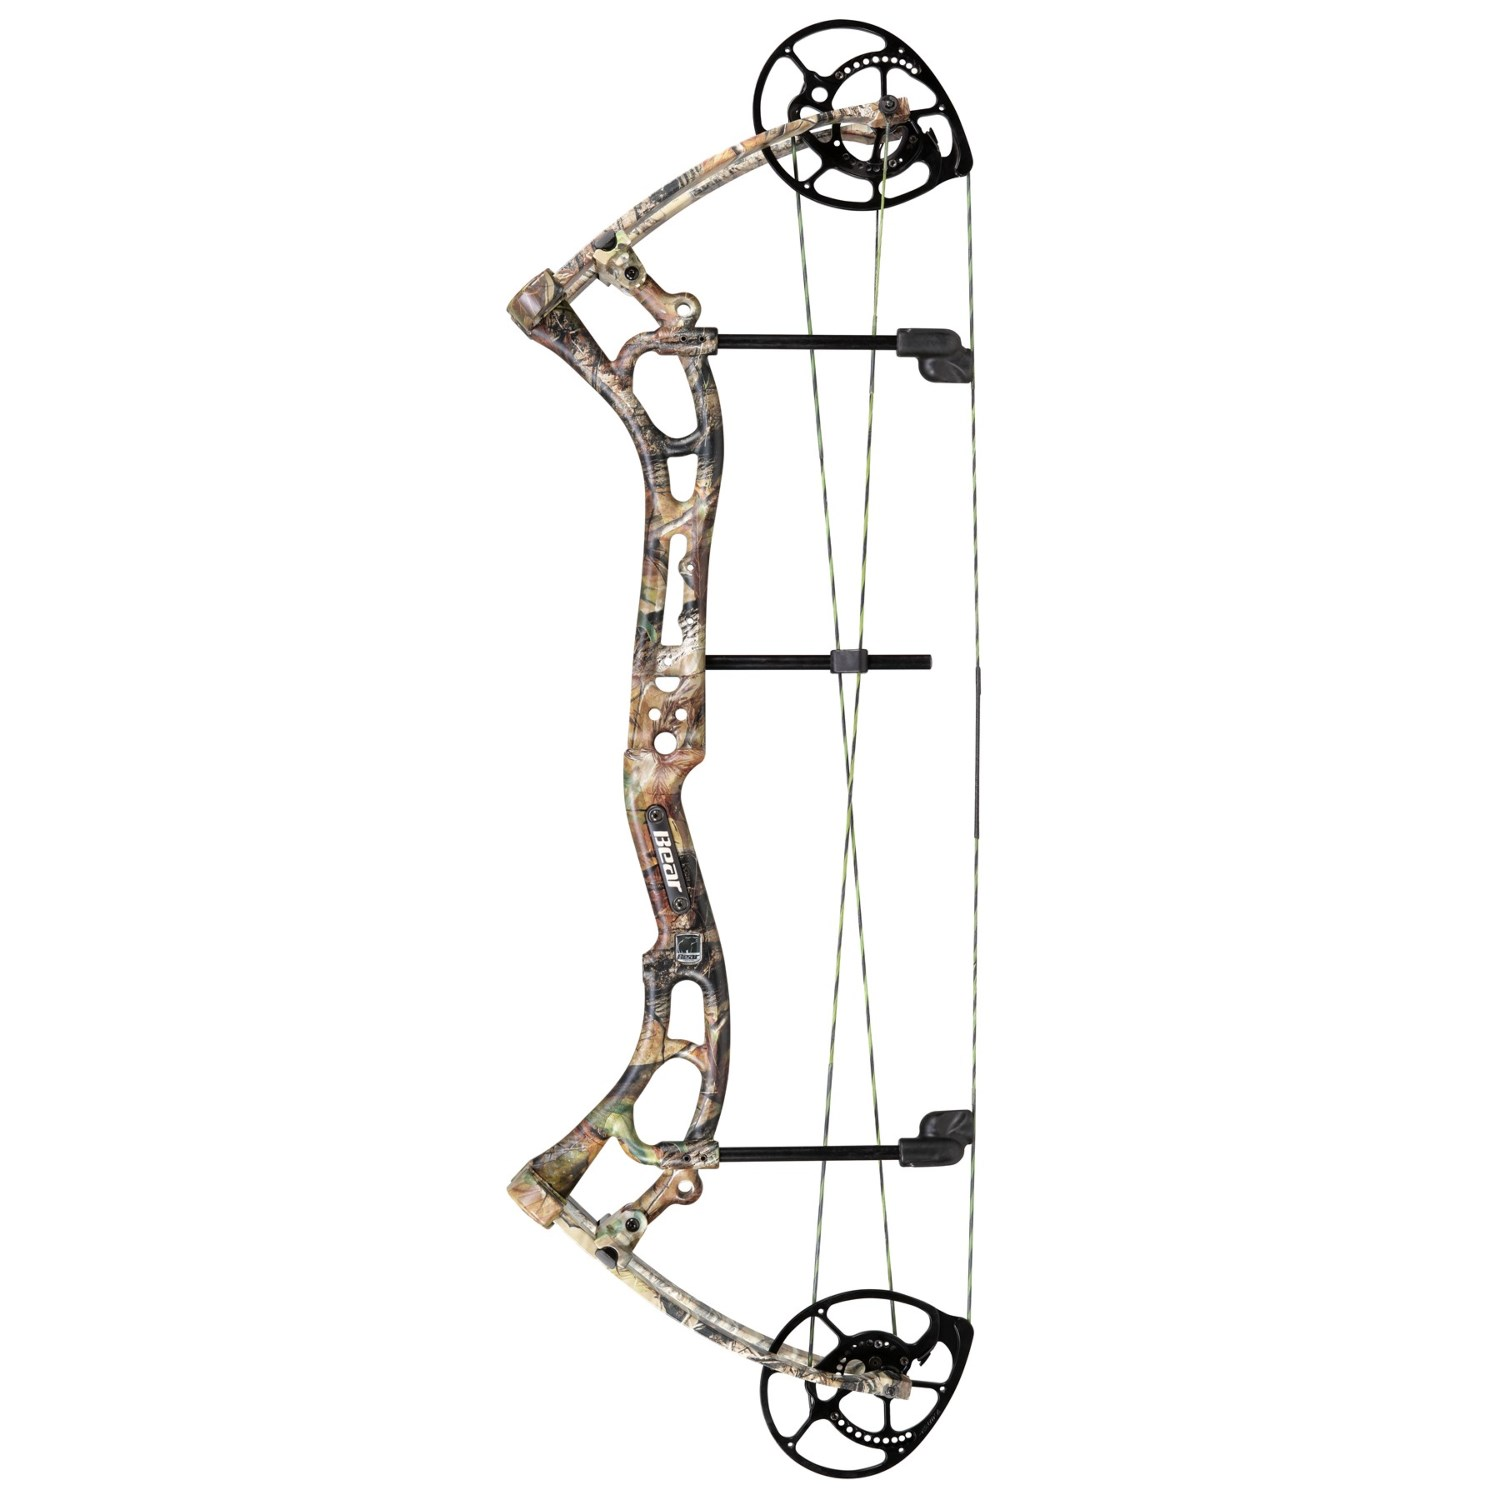 Bear Archery Effect Rth Compound Bow Package X